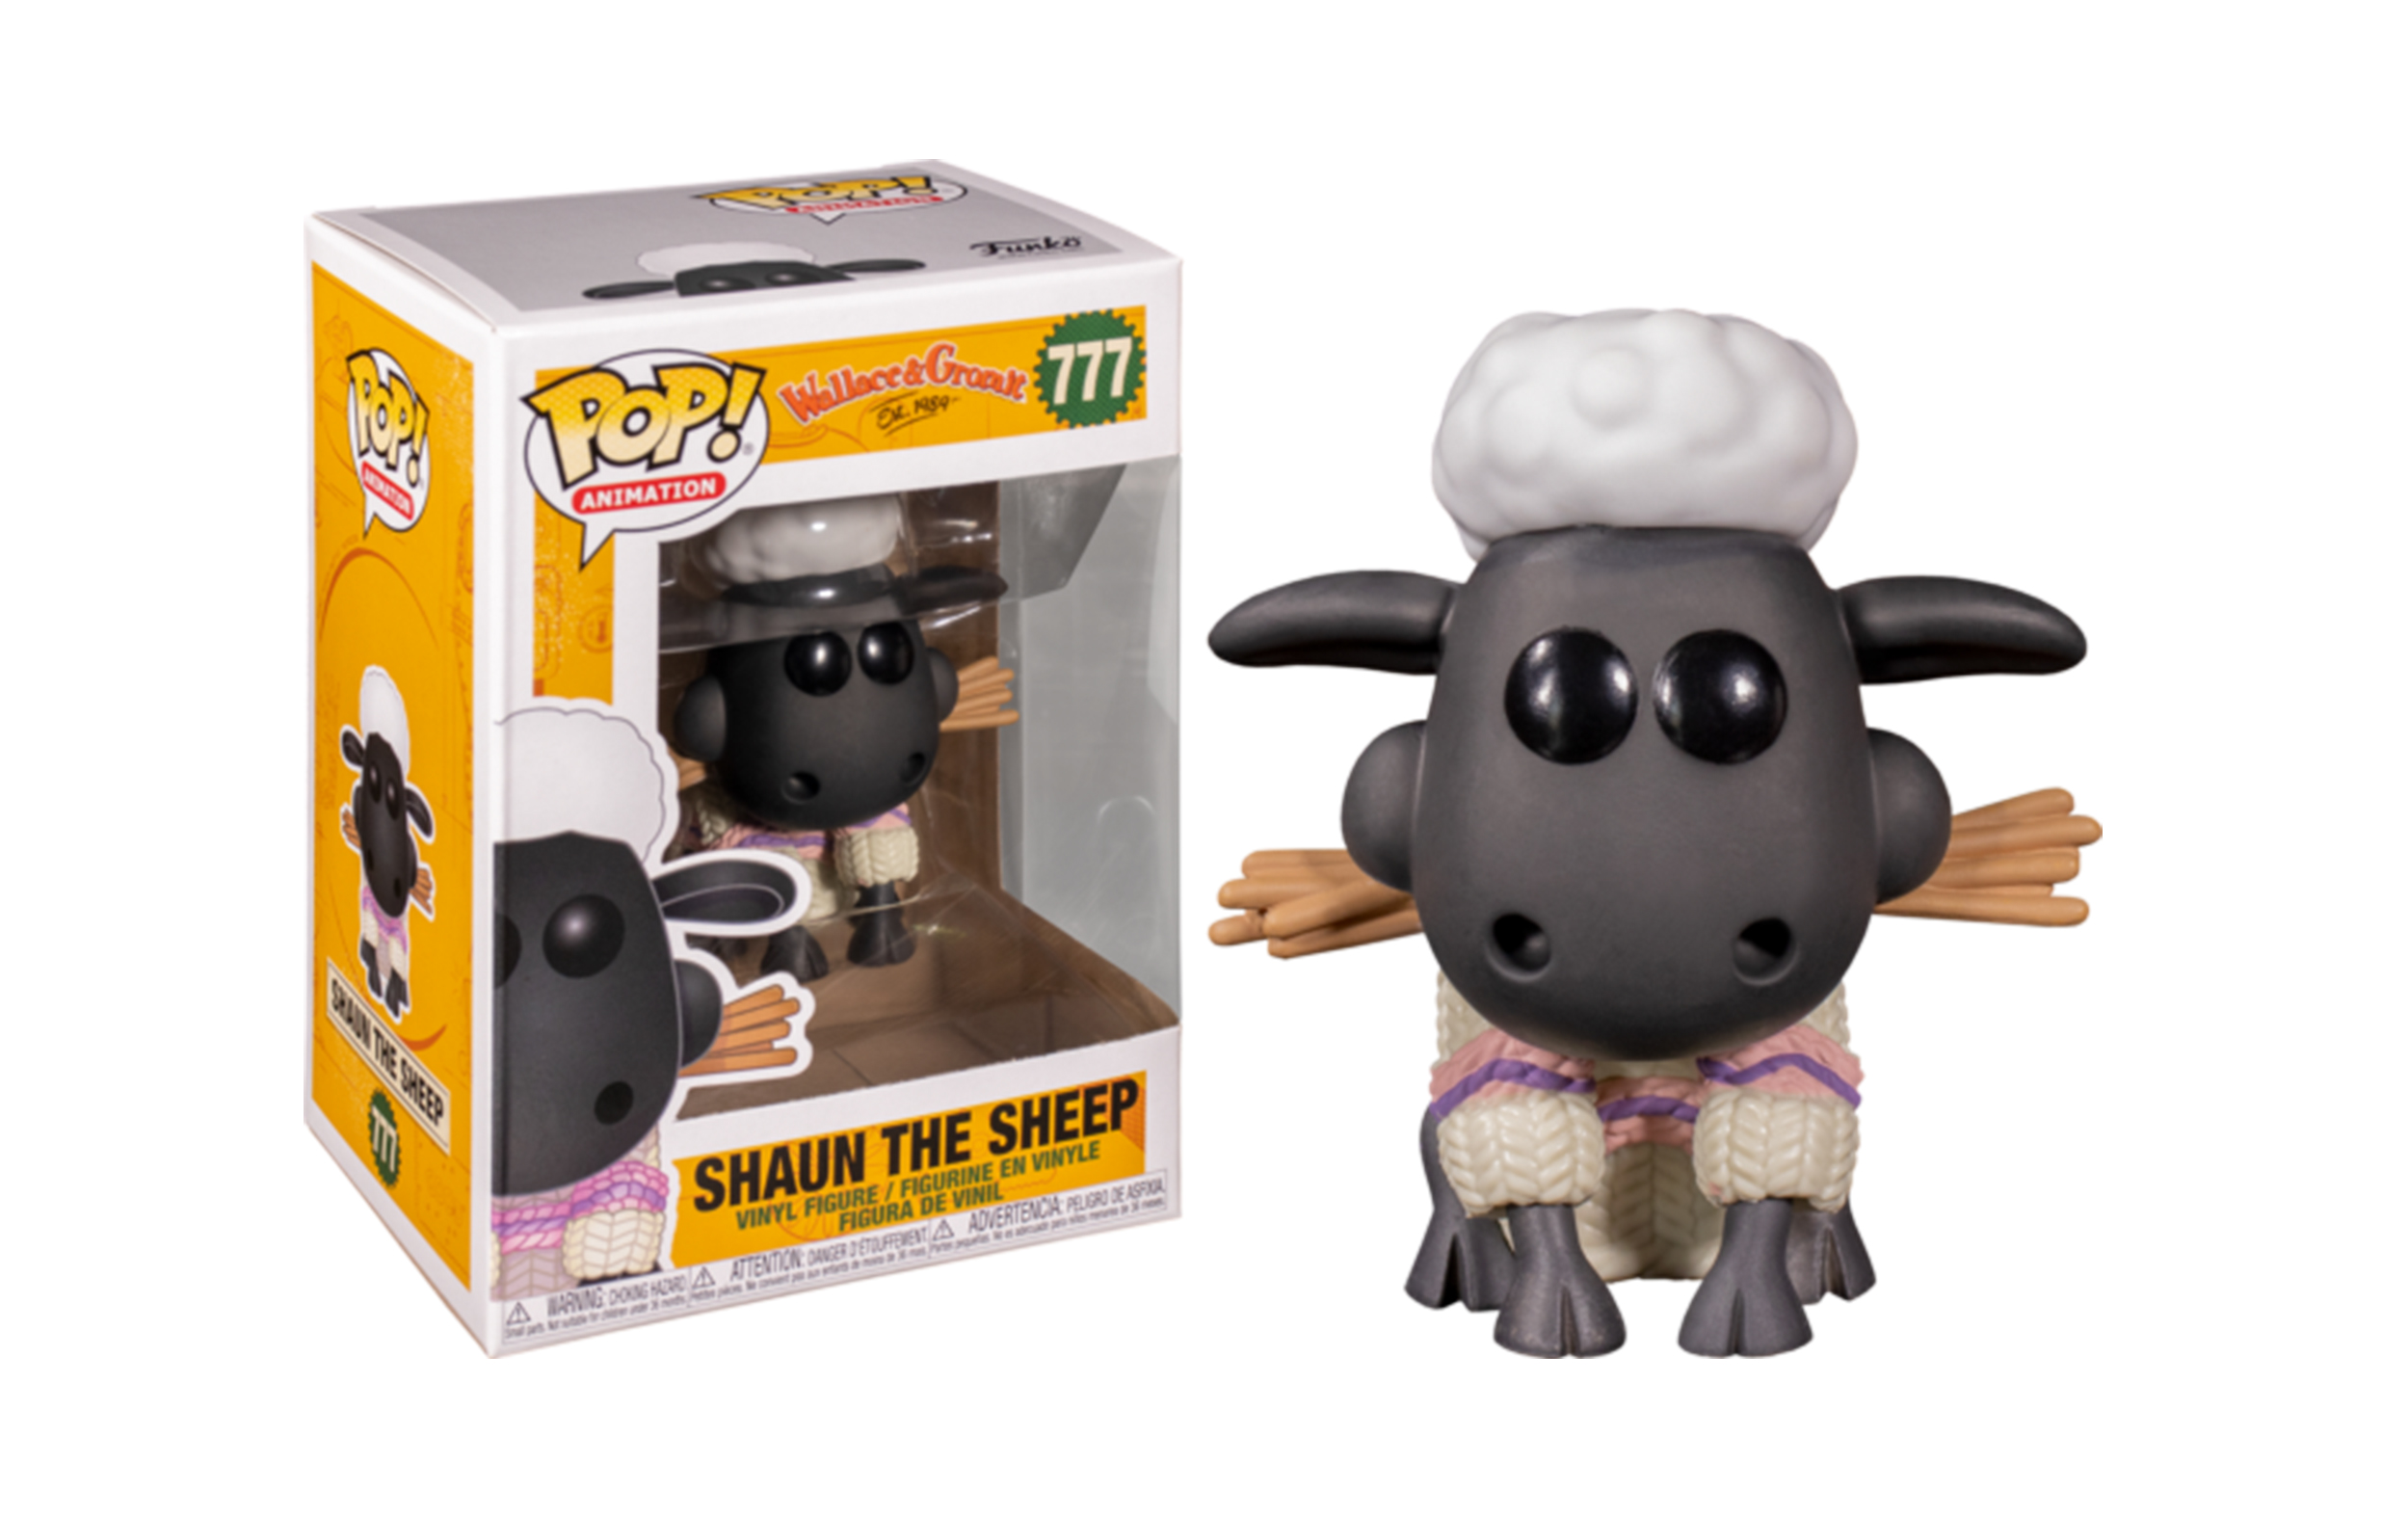 Wallace and Gromit Shaun The Sheep 777 Funko POP Vinyl Figure